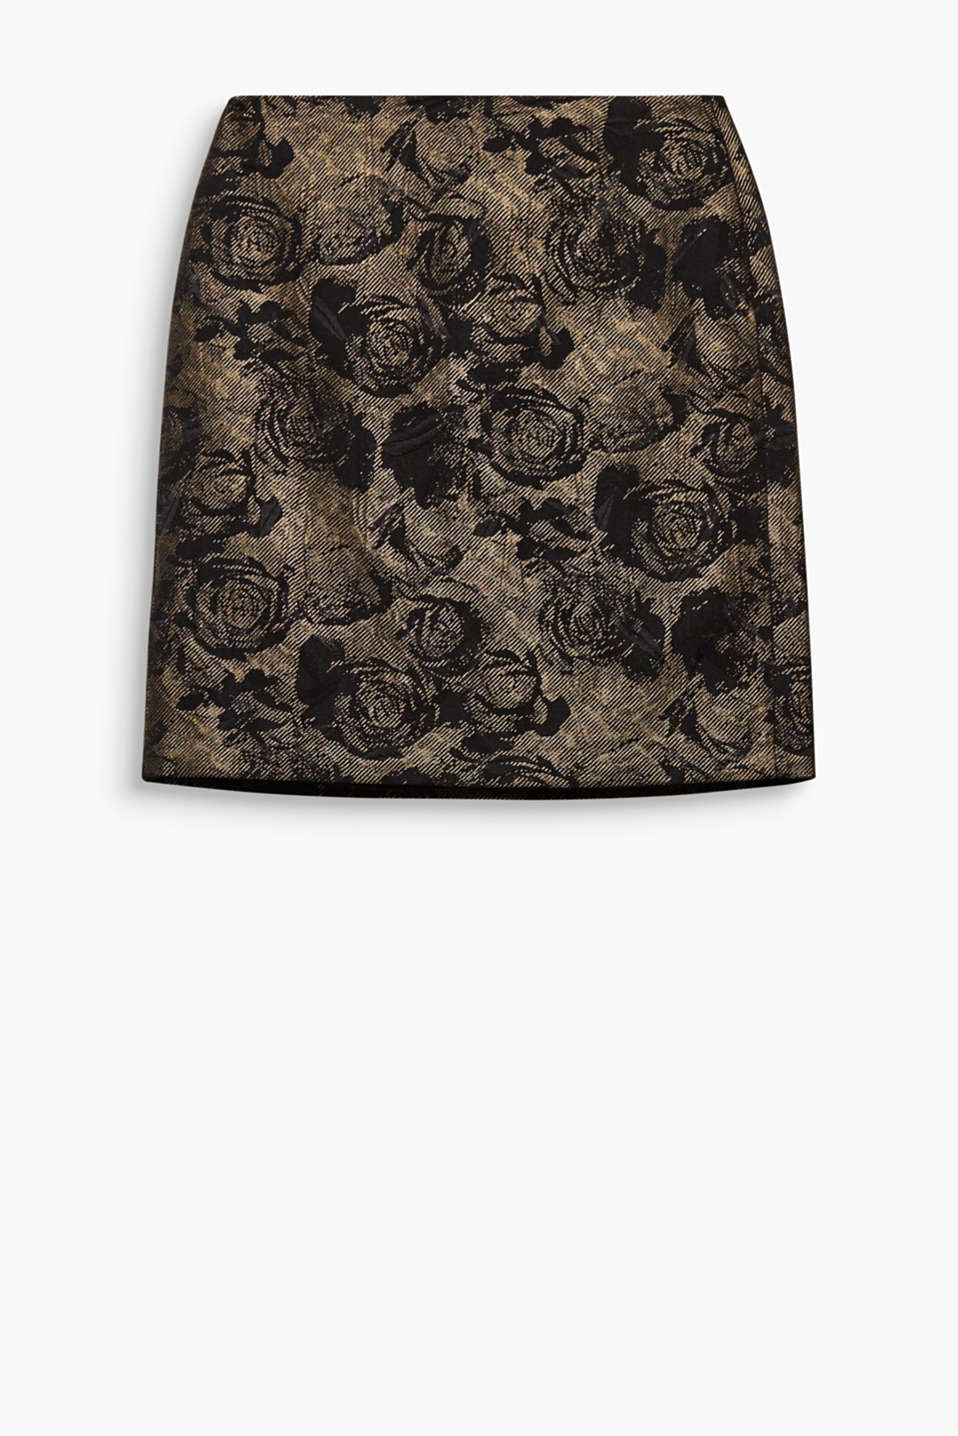 Subtle shine and interwoven flowers make this mini-skirt a feminine glamour piece!